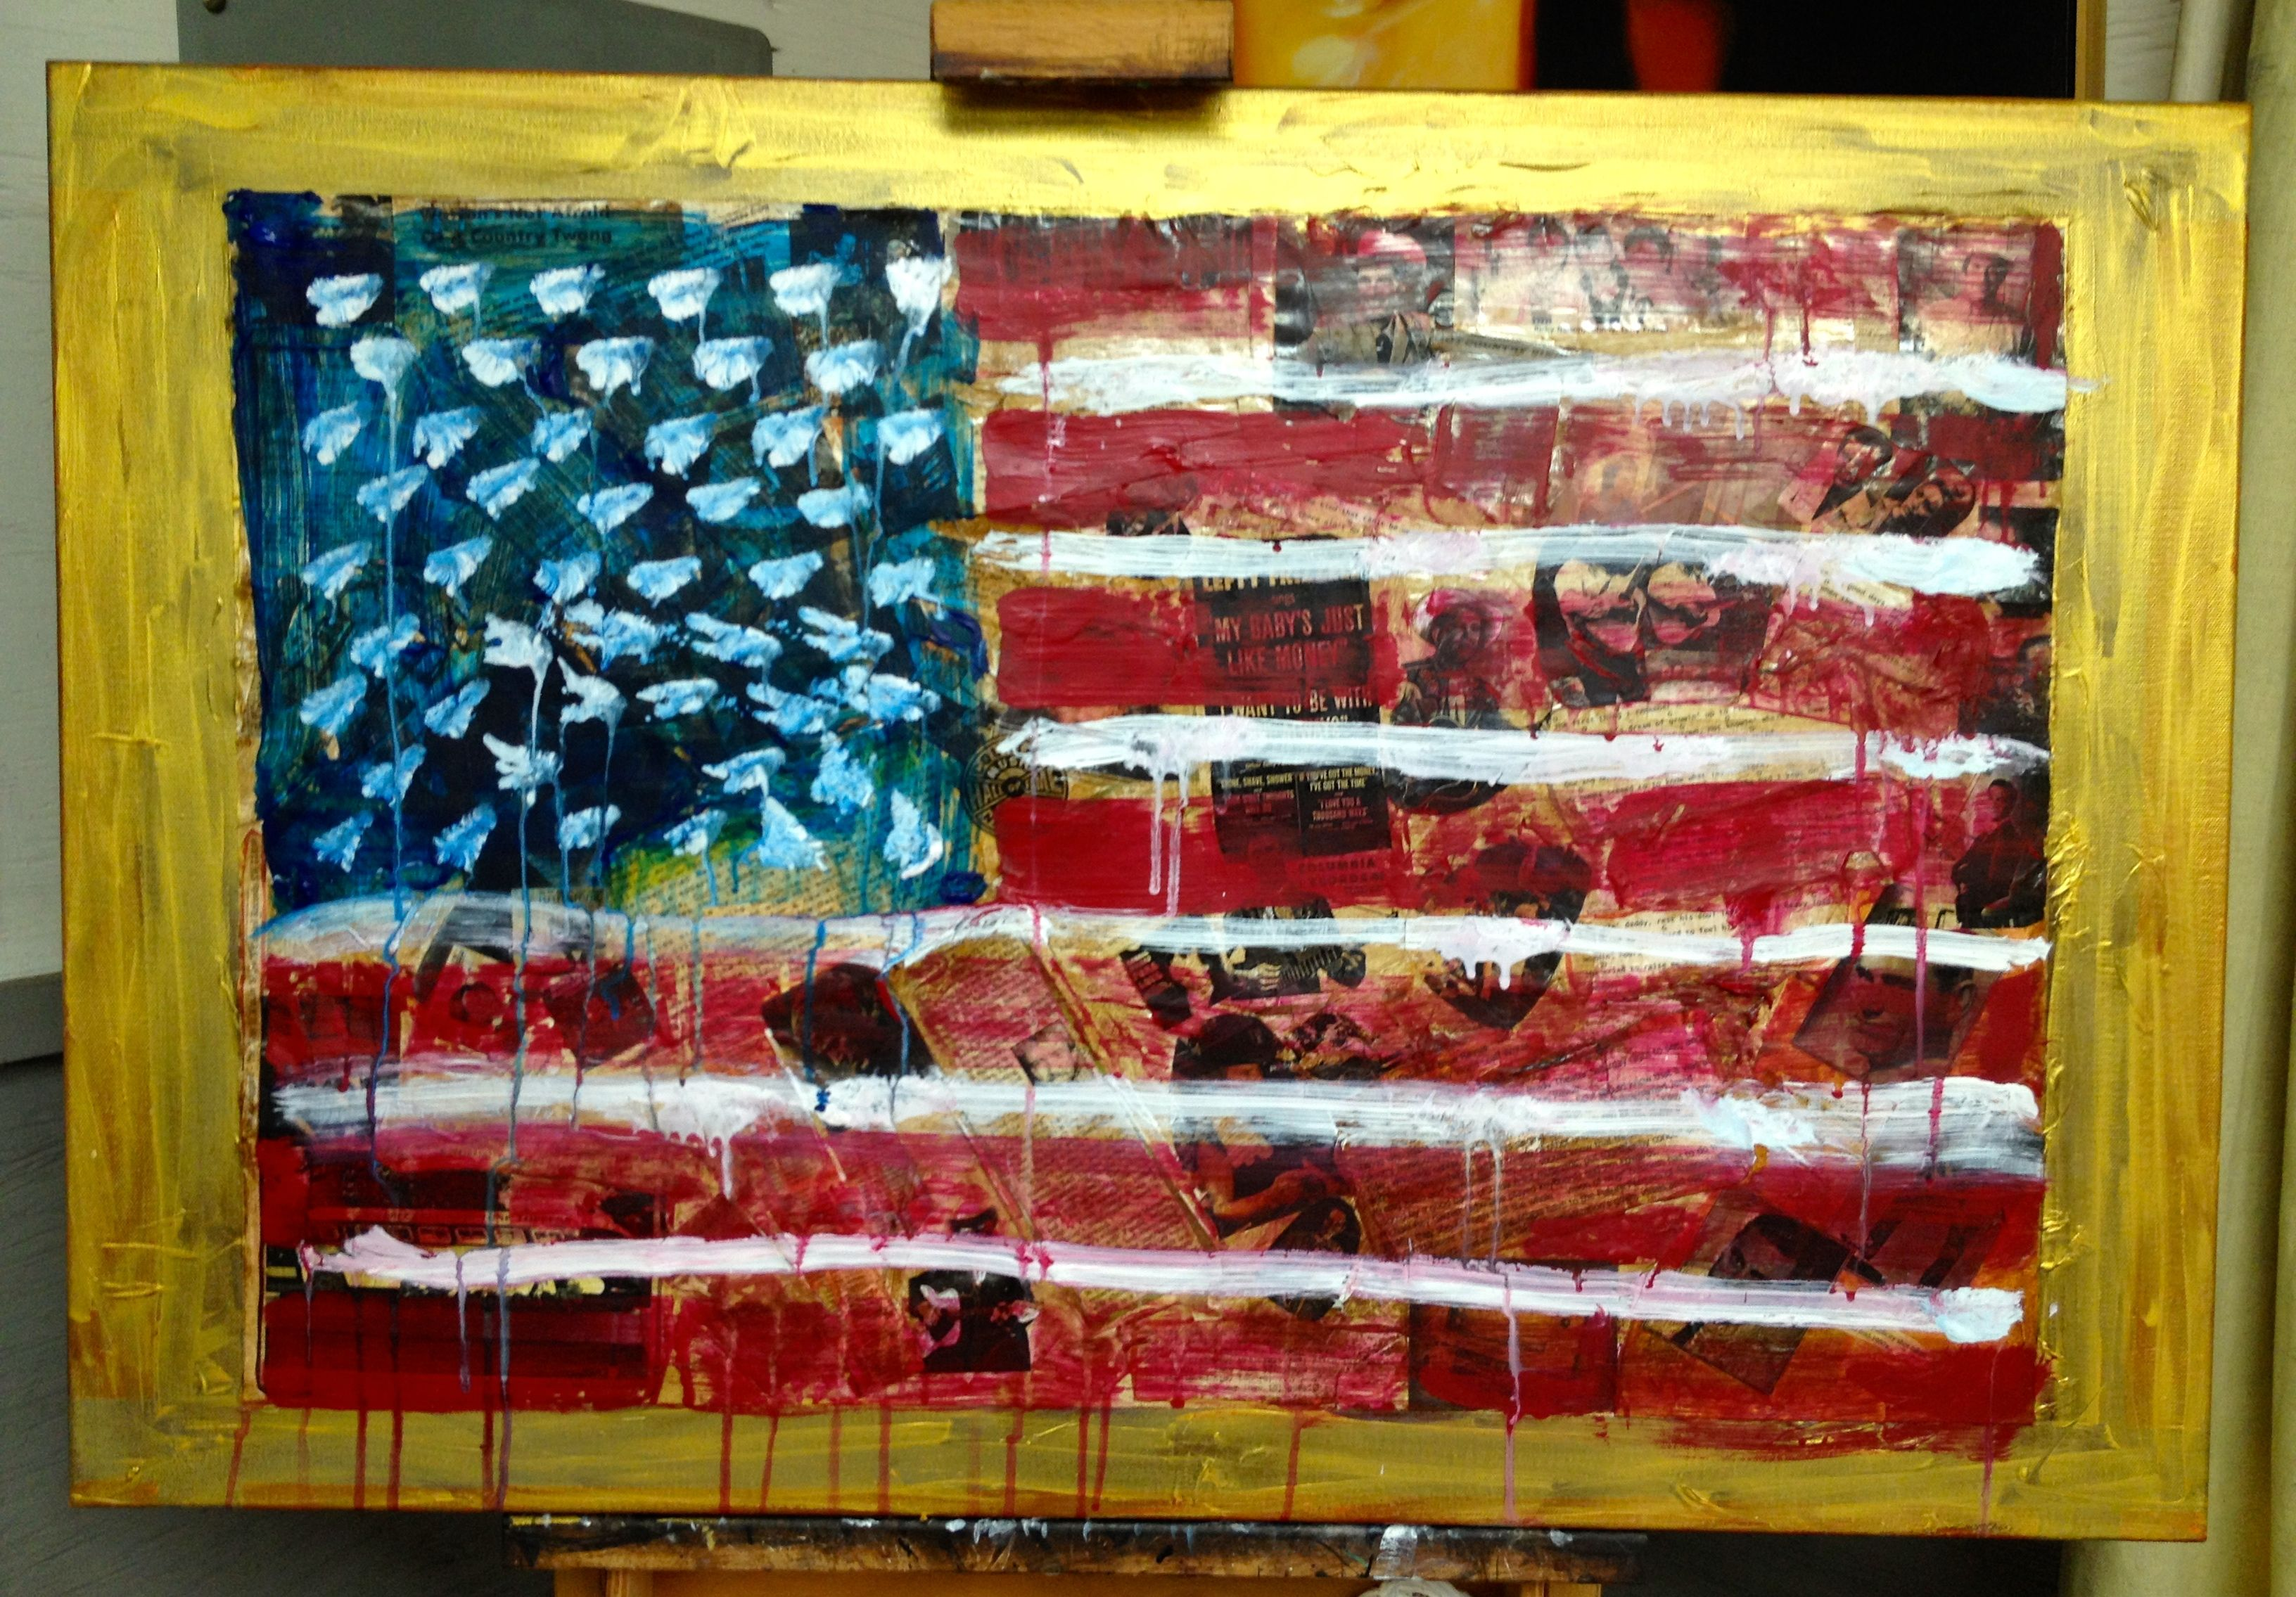 Country Music Usa Painting For Sale If Interested Please E Mail Buddyleeowens Gmail Com Art Artwork Artist Painting Artwork Paintings For Sale